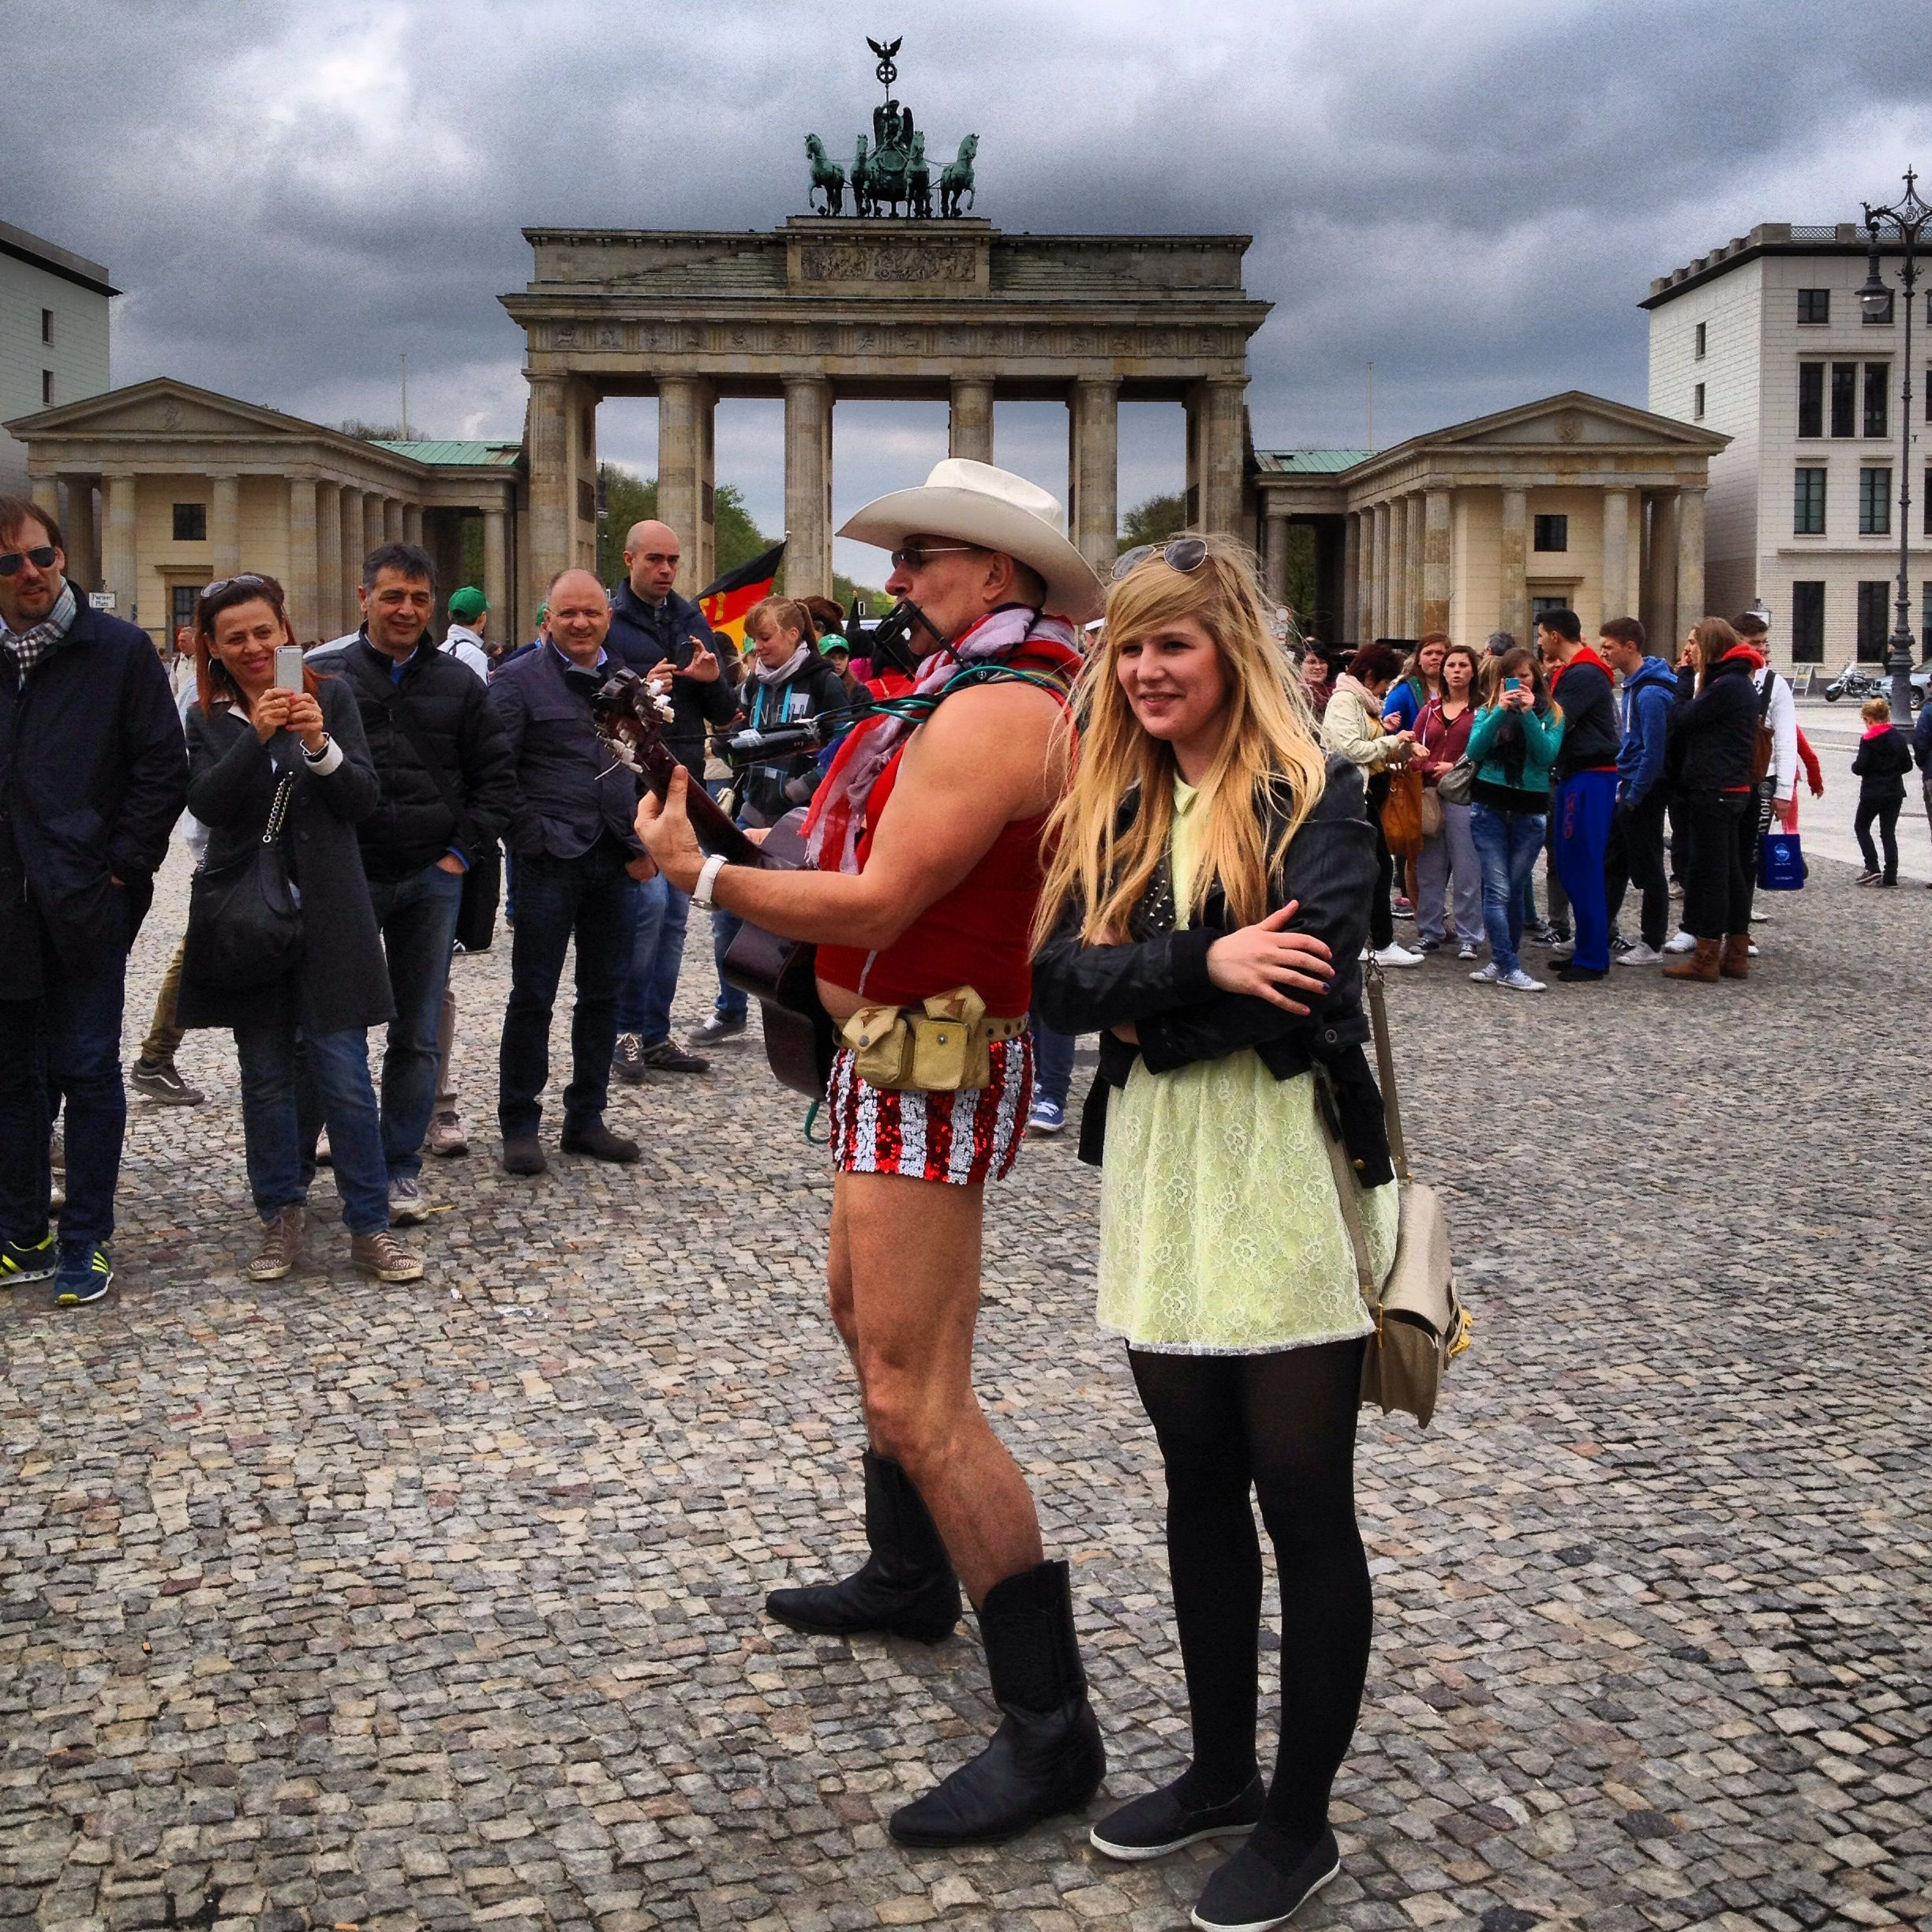 Pariser Platz-Great view of Brandenburg Gate and great also for people watching :)